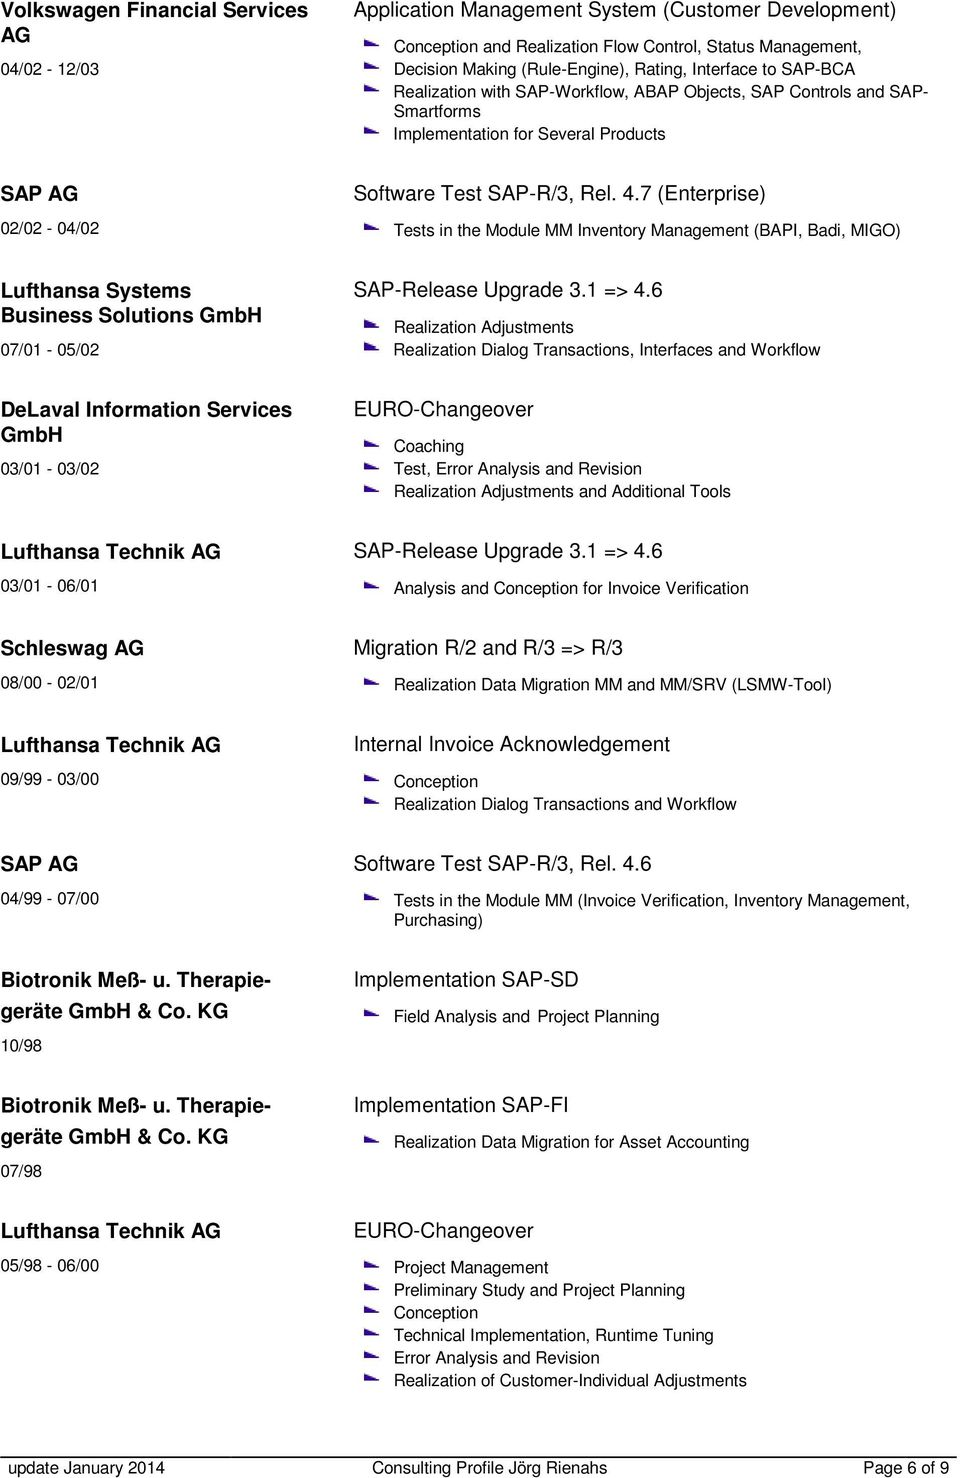 7 (Enterprise) Tests in the Module MM Inventory Management (BAPI, Badi, MIGO) Lufthansa Systems Business Solutions GmbH 07/01-05/02 SAP-Release Upgrade 3.1 => 4.